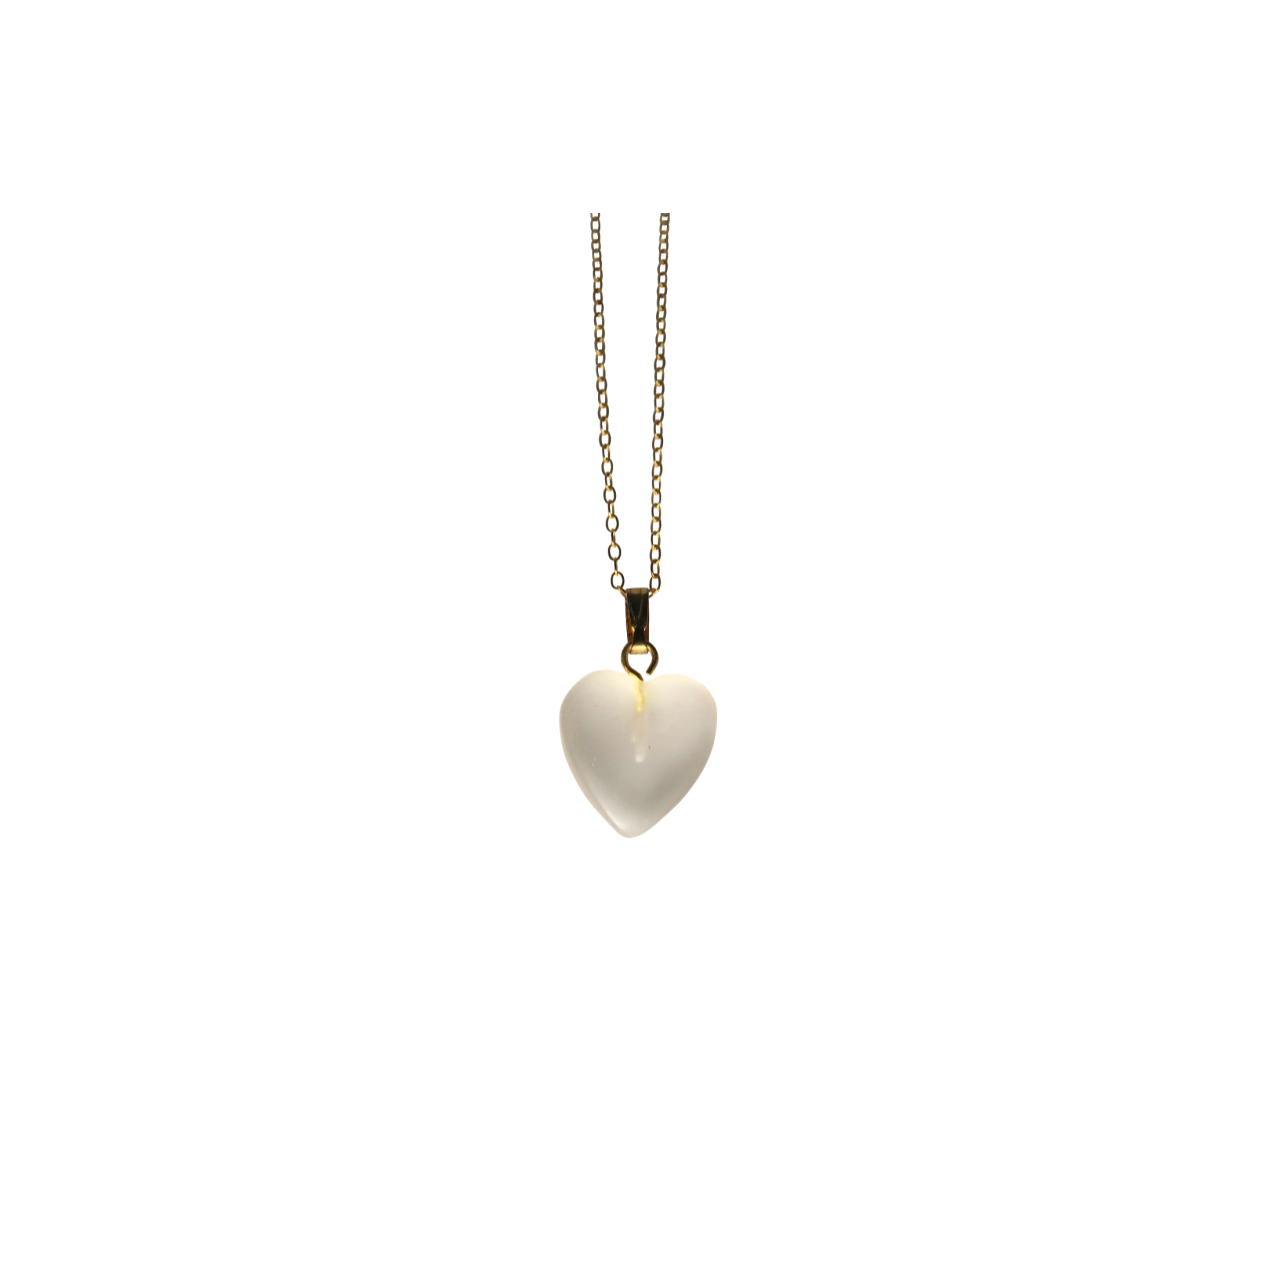 Frosted Quartz Heart Necklace